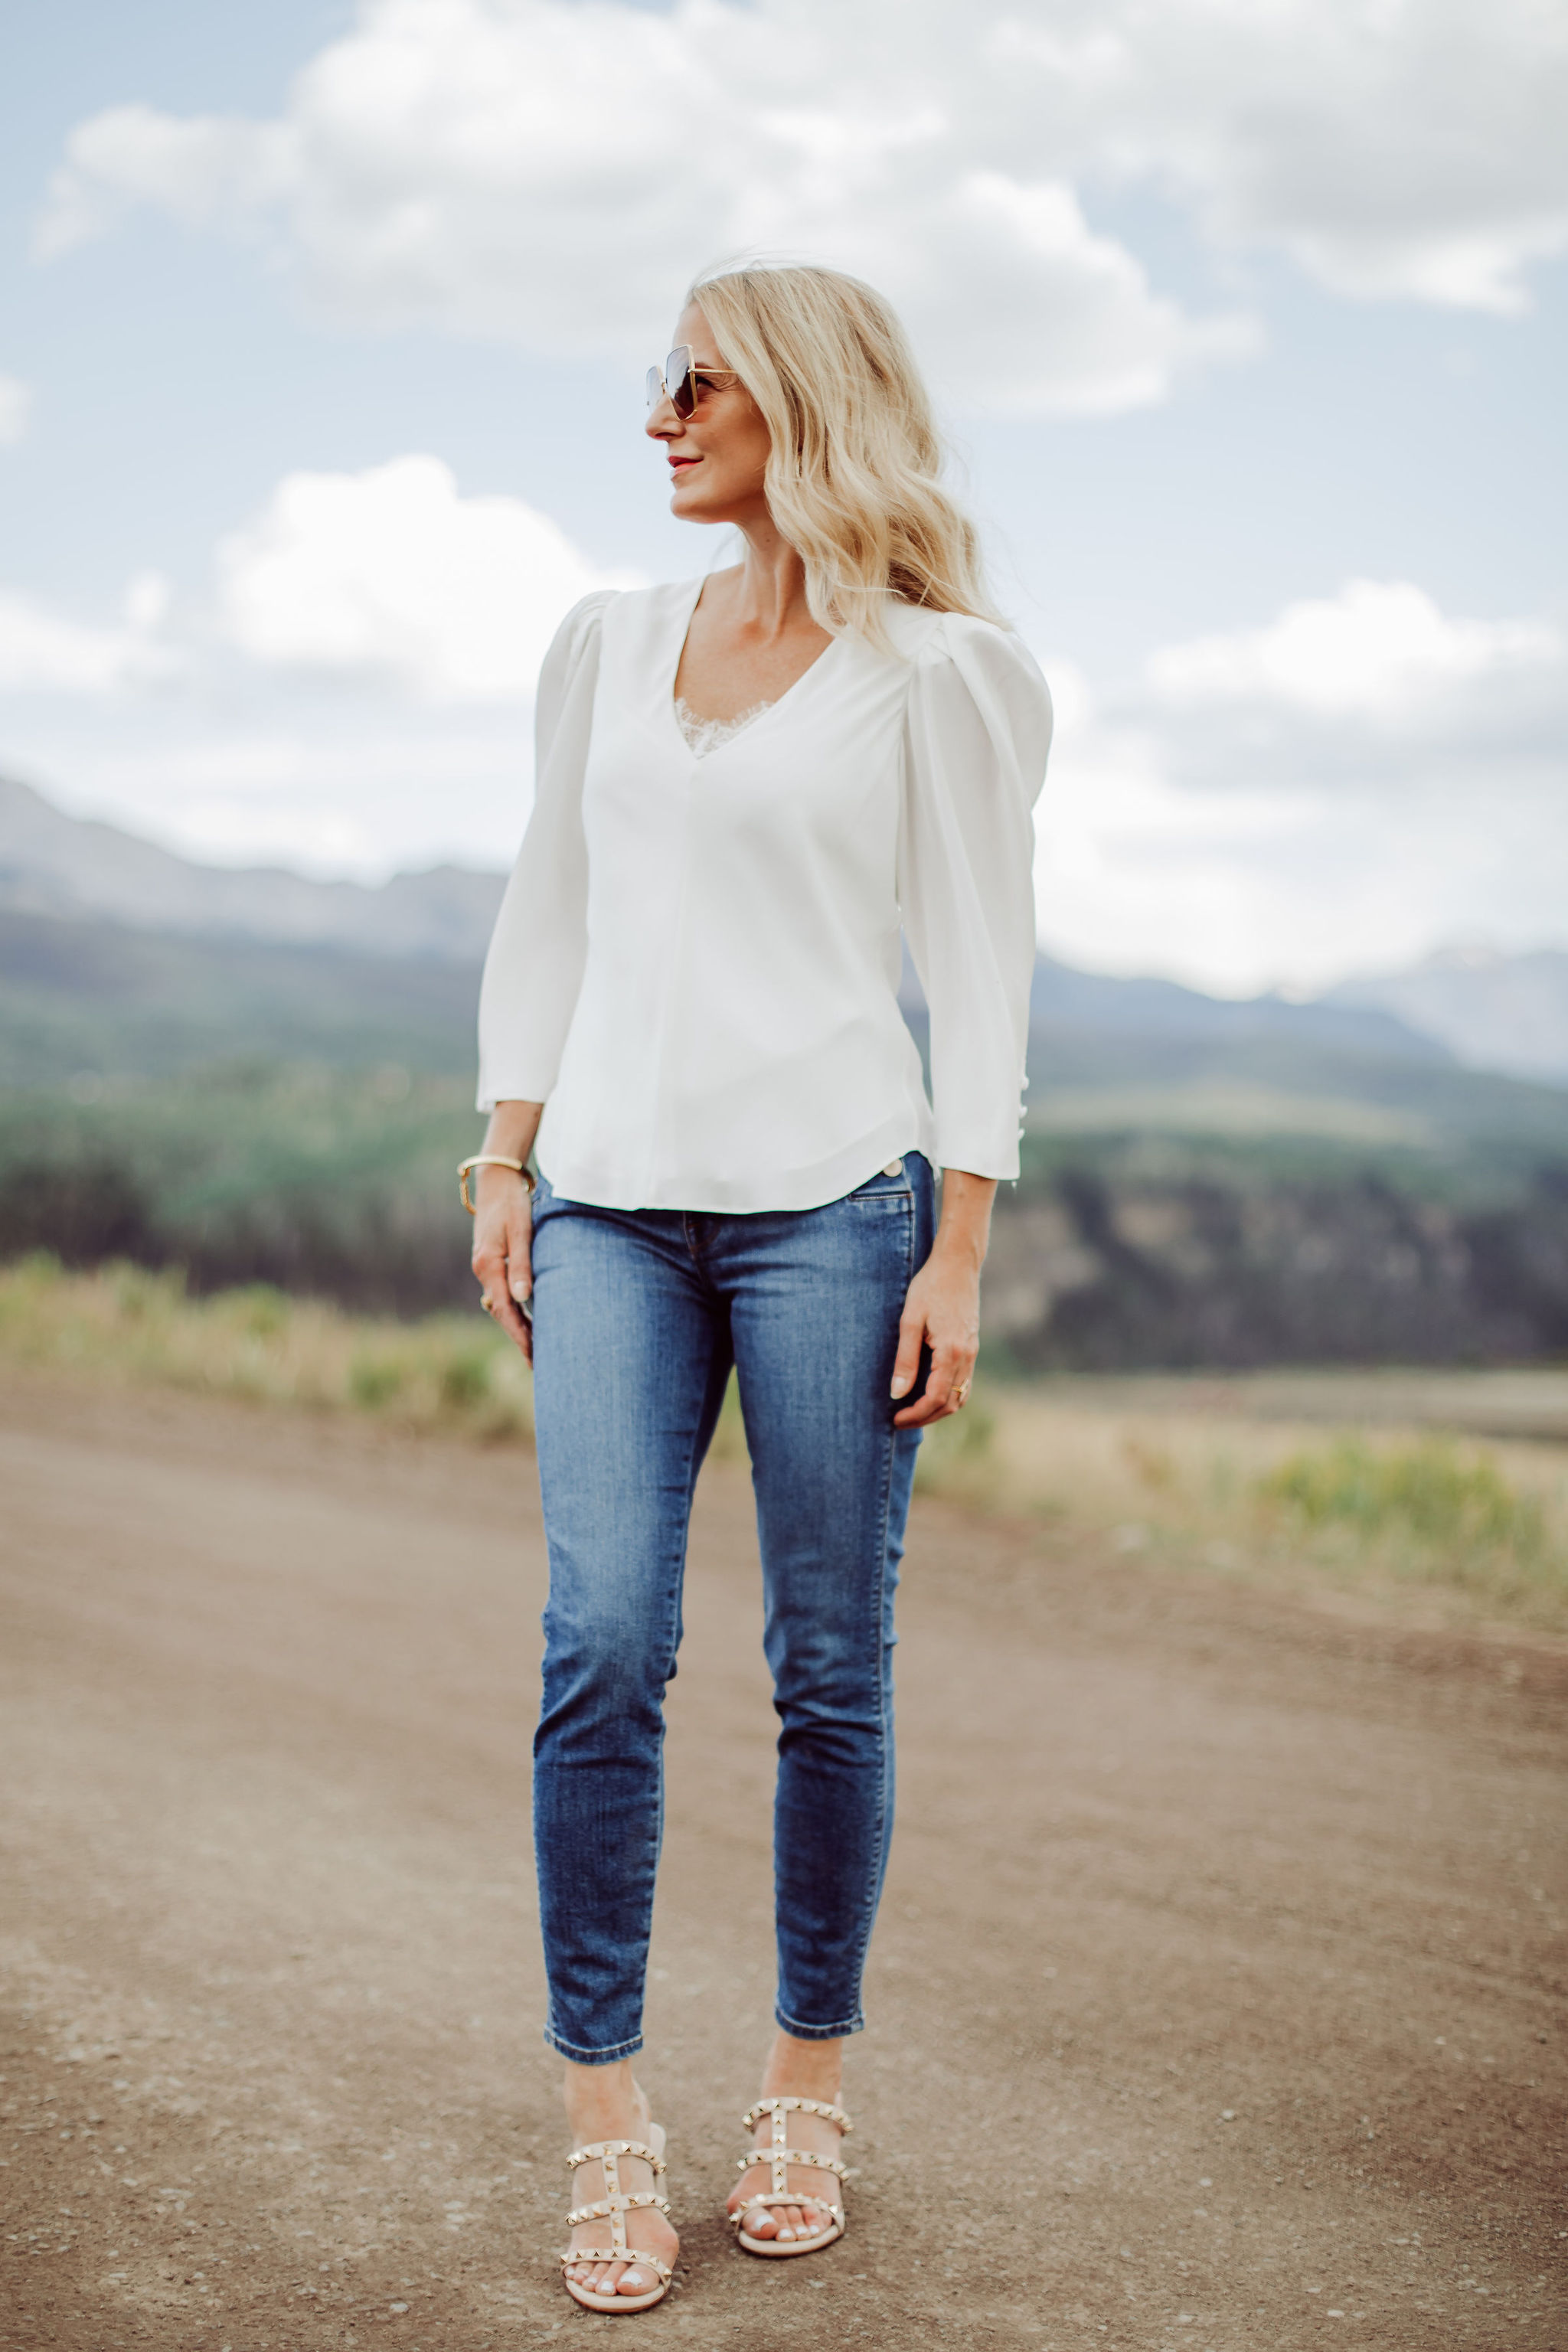 Frame Blouses, Fashion blogger Erin Busbee of Busbee Style wearing a white puff sleeve blouse by Frame with Valentino sandals and J Brand Natasha jeans in Telluride, Colorado